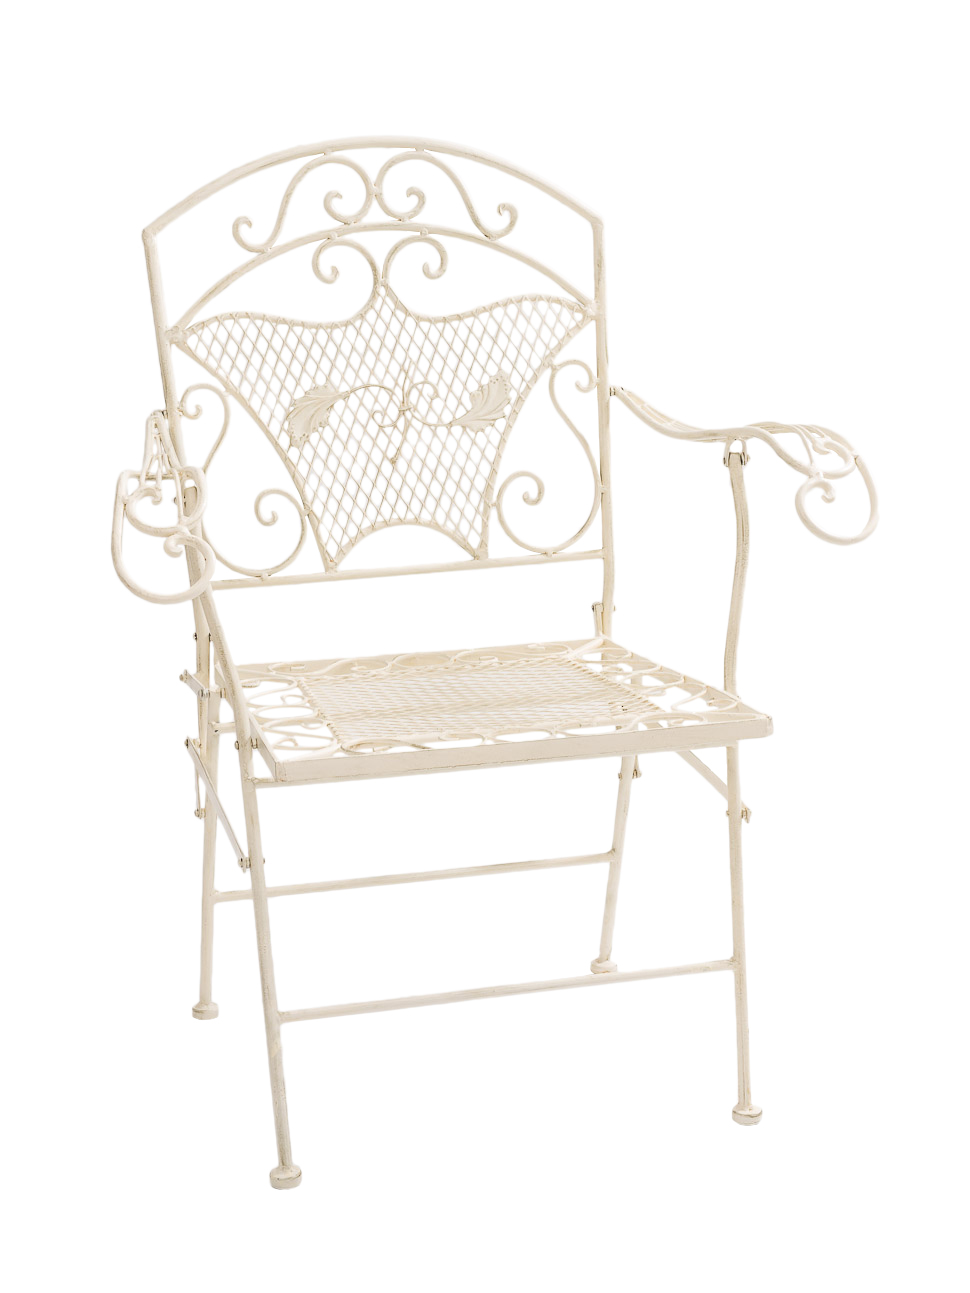 nostalgie gartensessel stuhl sessel eisen klappstuhl antik stil creme weiss ebay. Black Bedroom Furniture Sets. Home Design Ideas